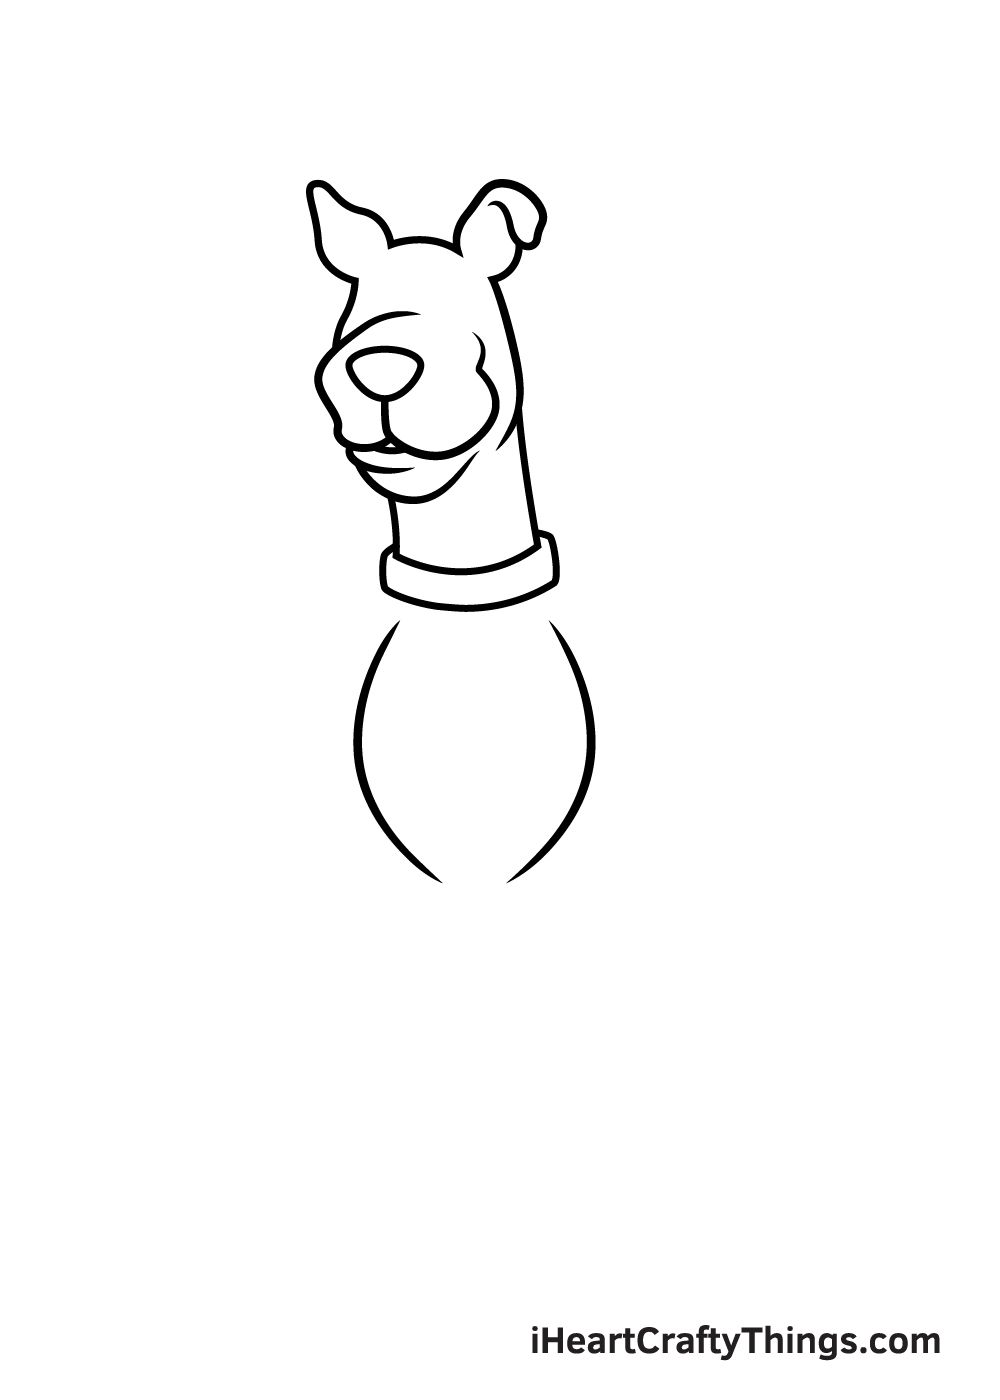 drawing Scooby-Doo step 5